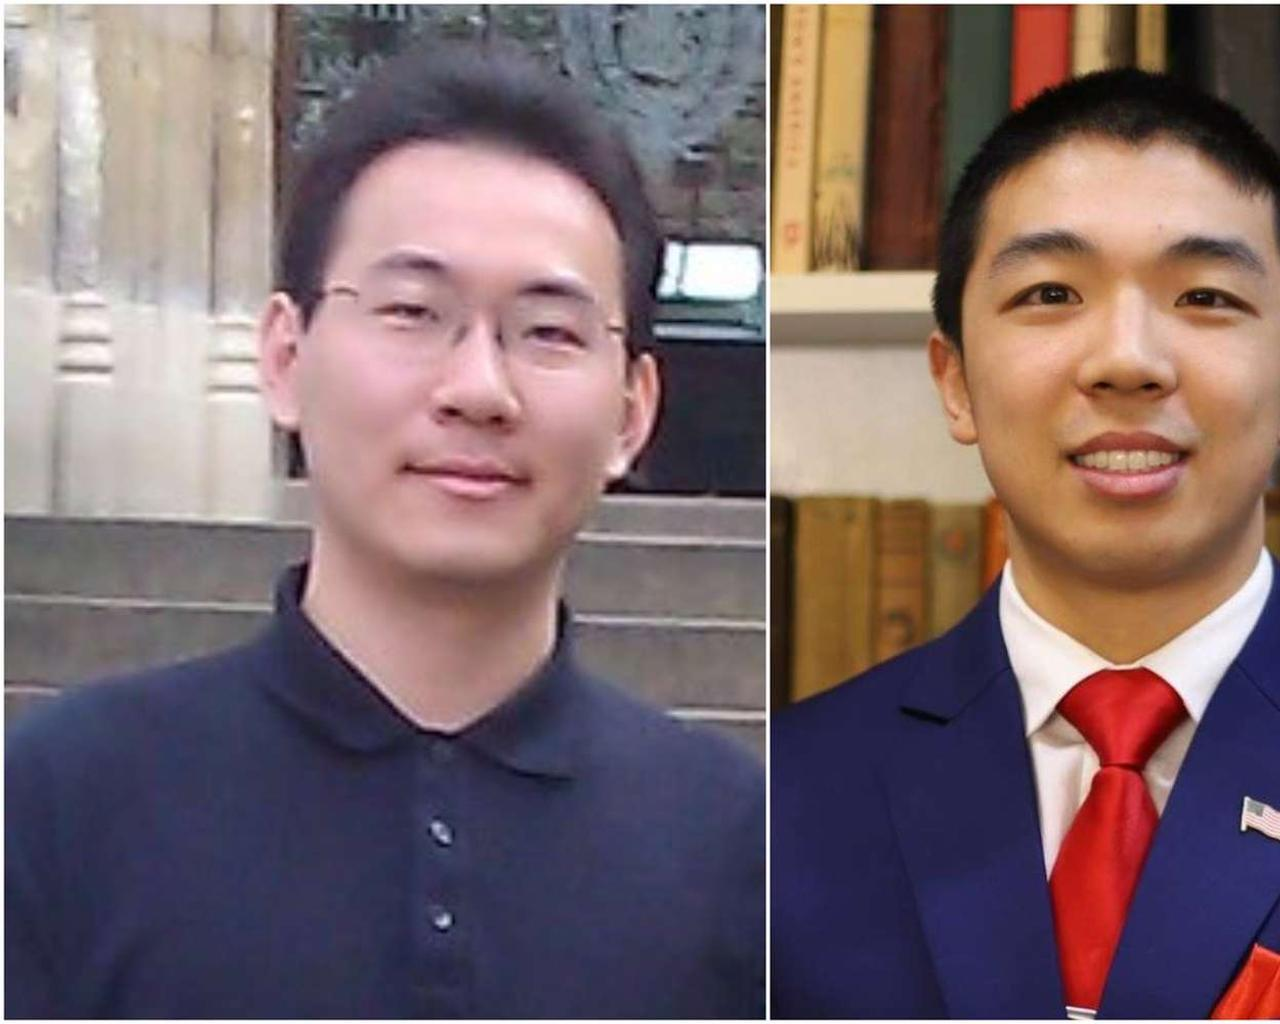 An international 'red notice' warrant has been issued for a MIT student accused of killing a Yale student